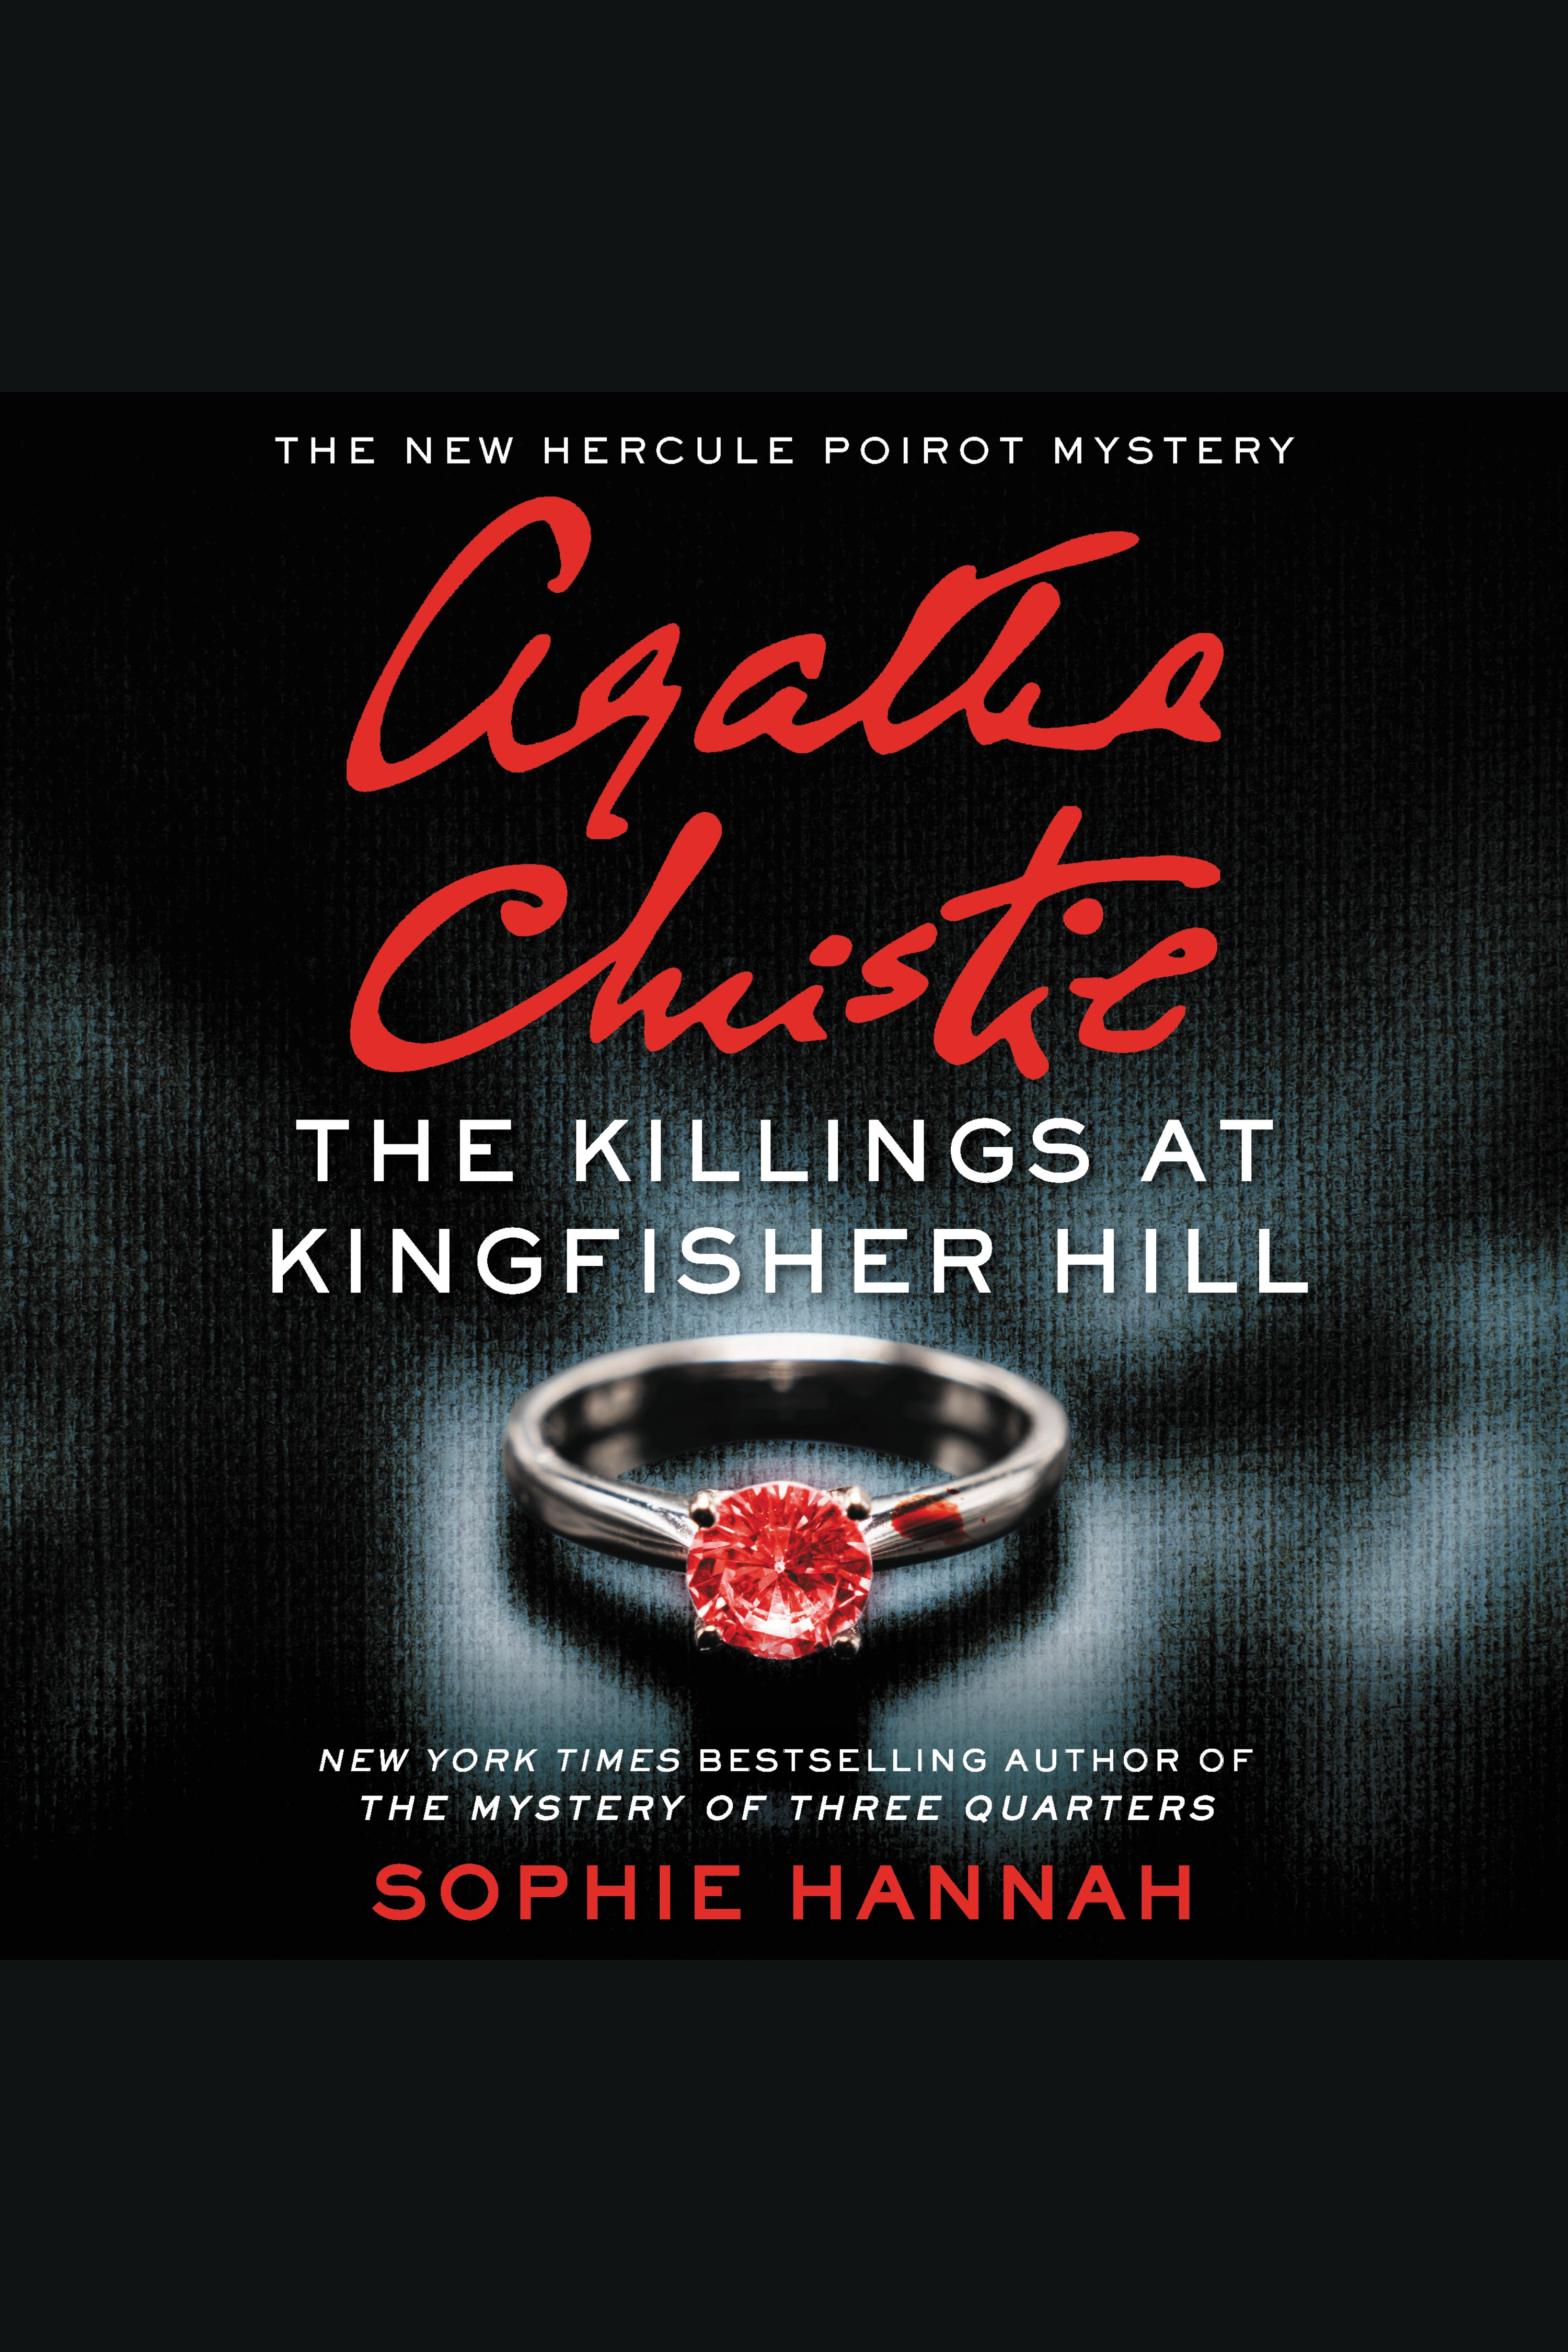 Cover Image of Killings at Kingfisher Hill, The